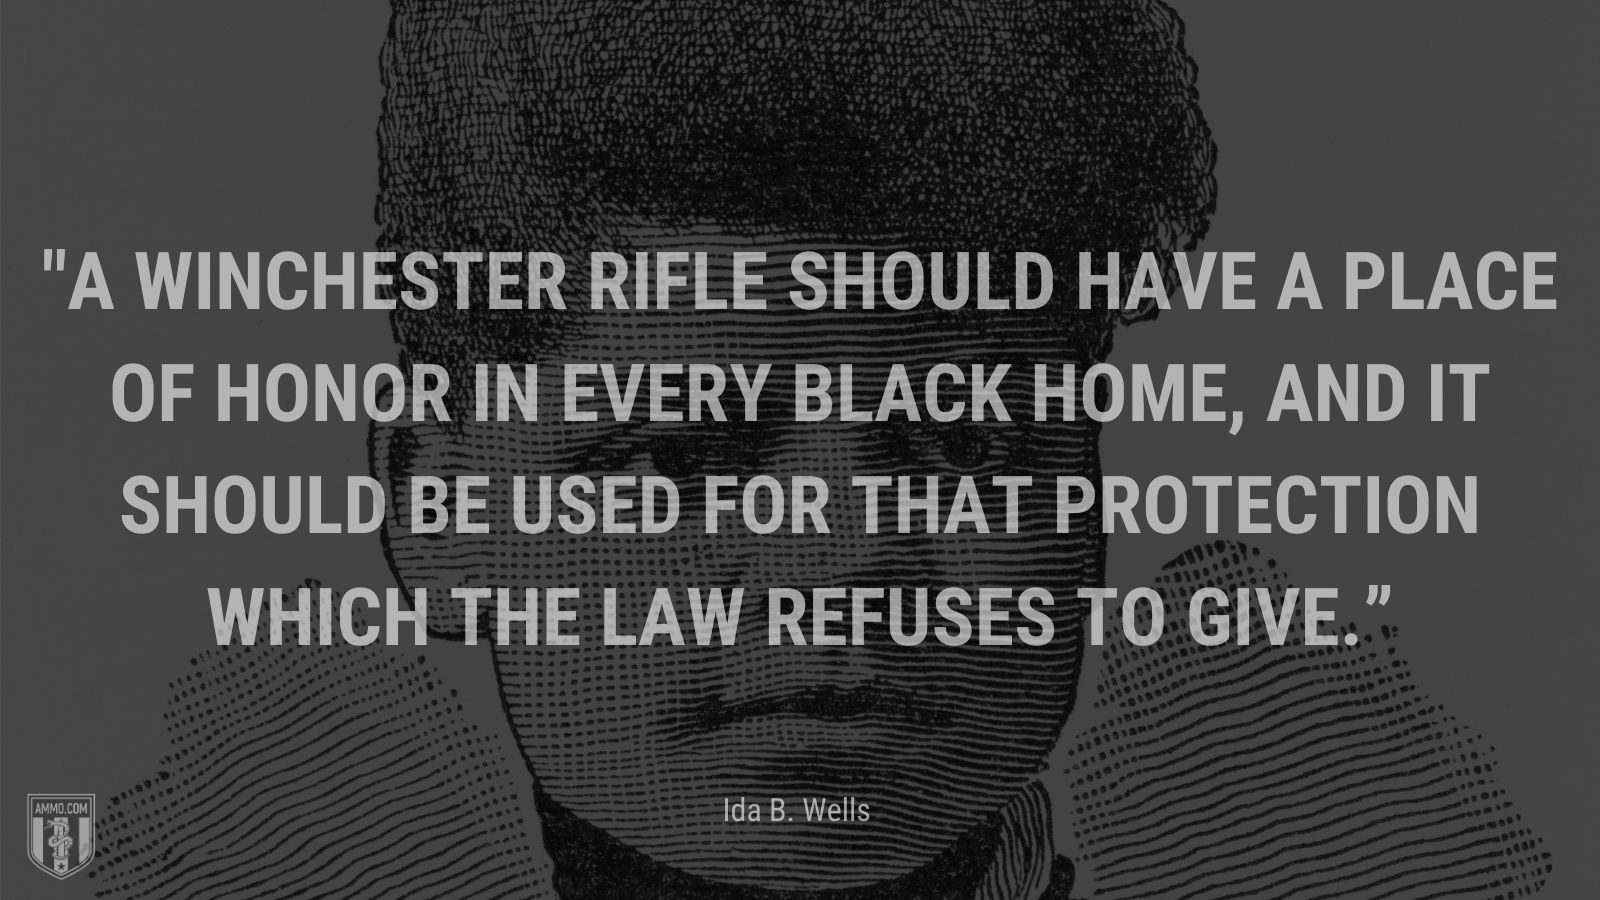 """""""A Winchester rifle should have a place of honor in every black home, and it should be used for that protection which the law refuses to give."""" - Ida B. Wells"""